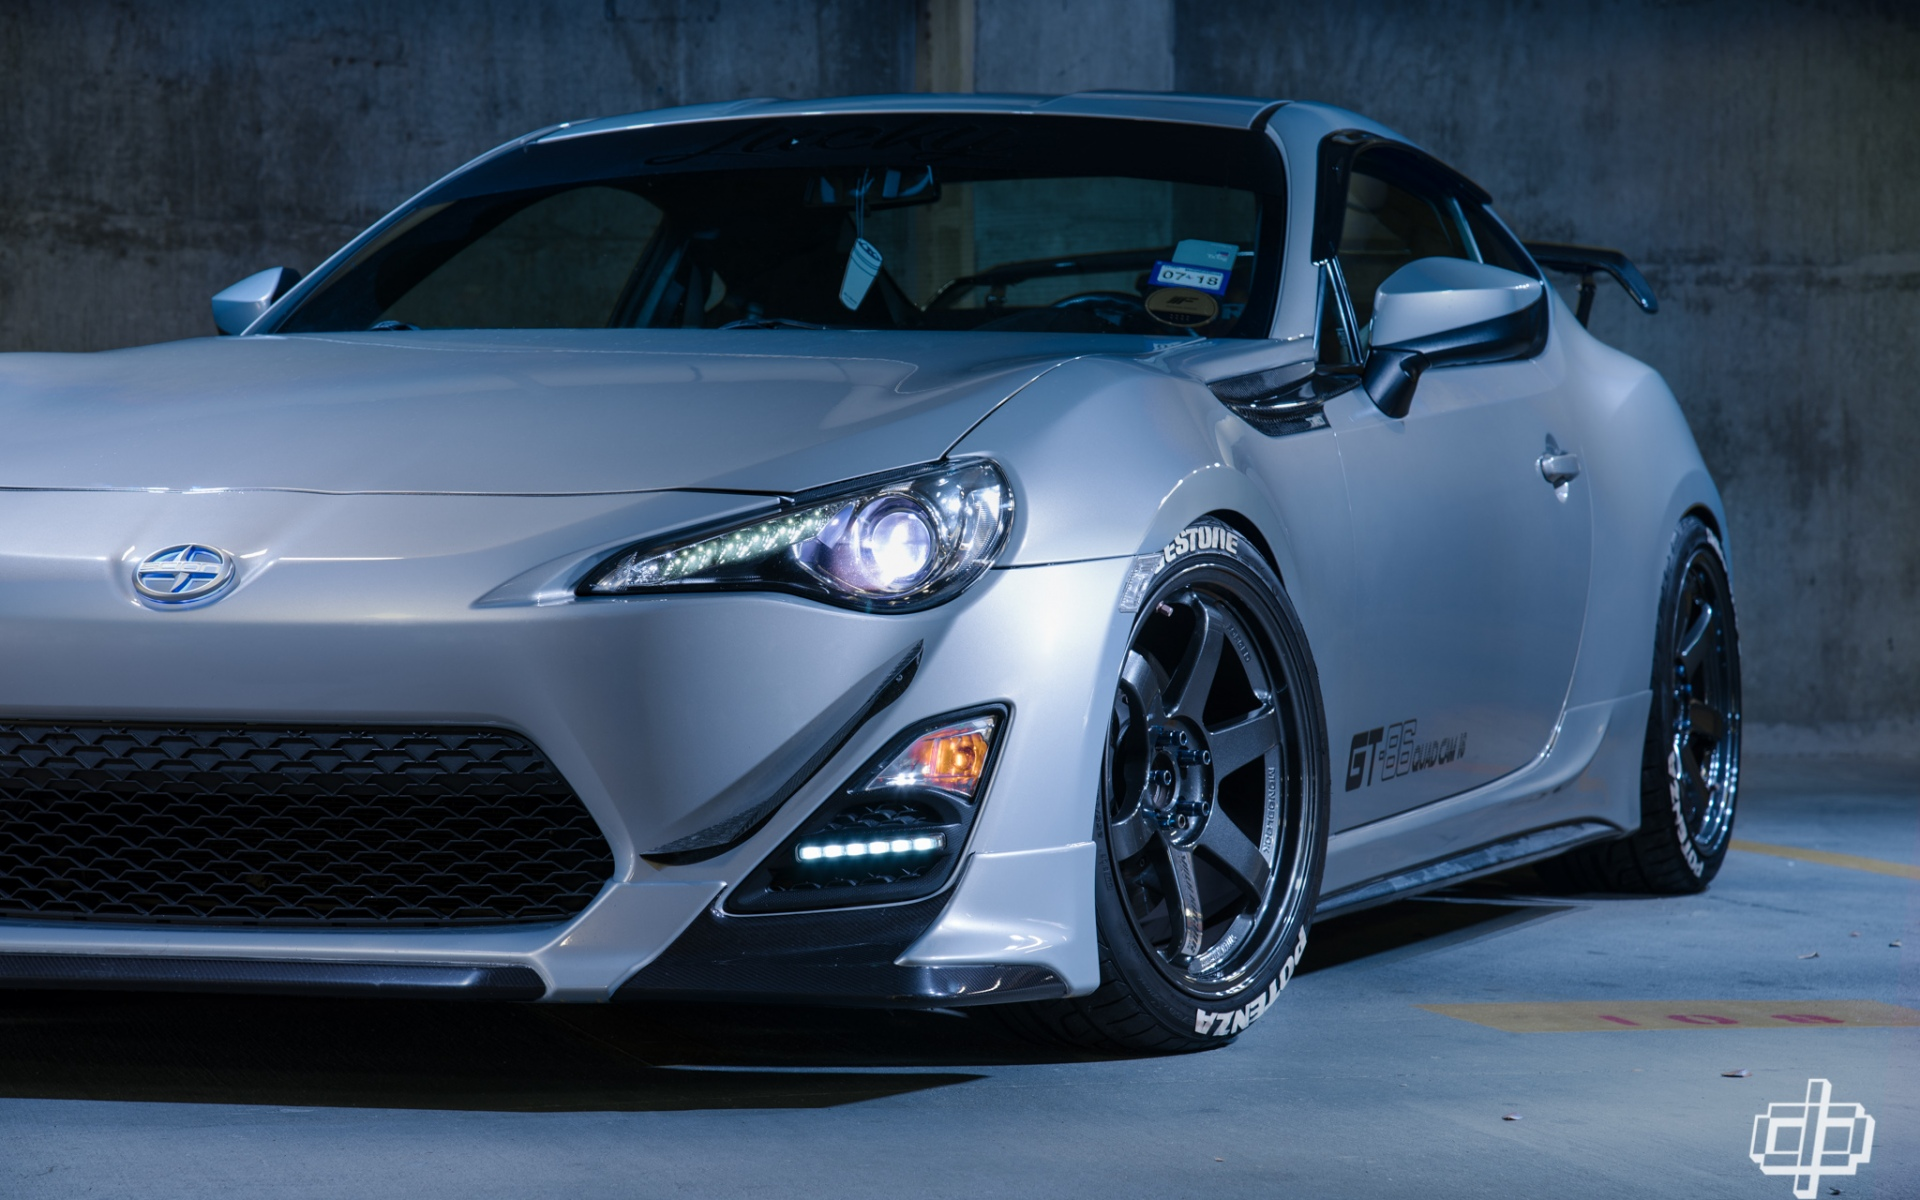 Fat Pat's 'Lucky FRS' - Automotive Photography